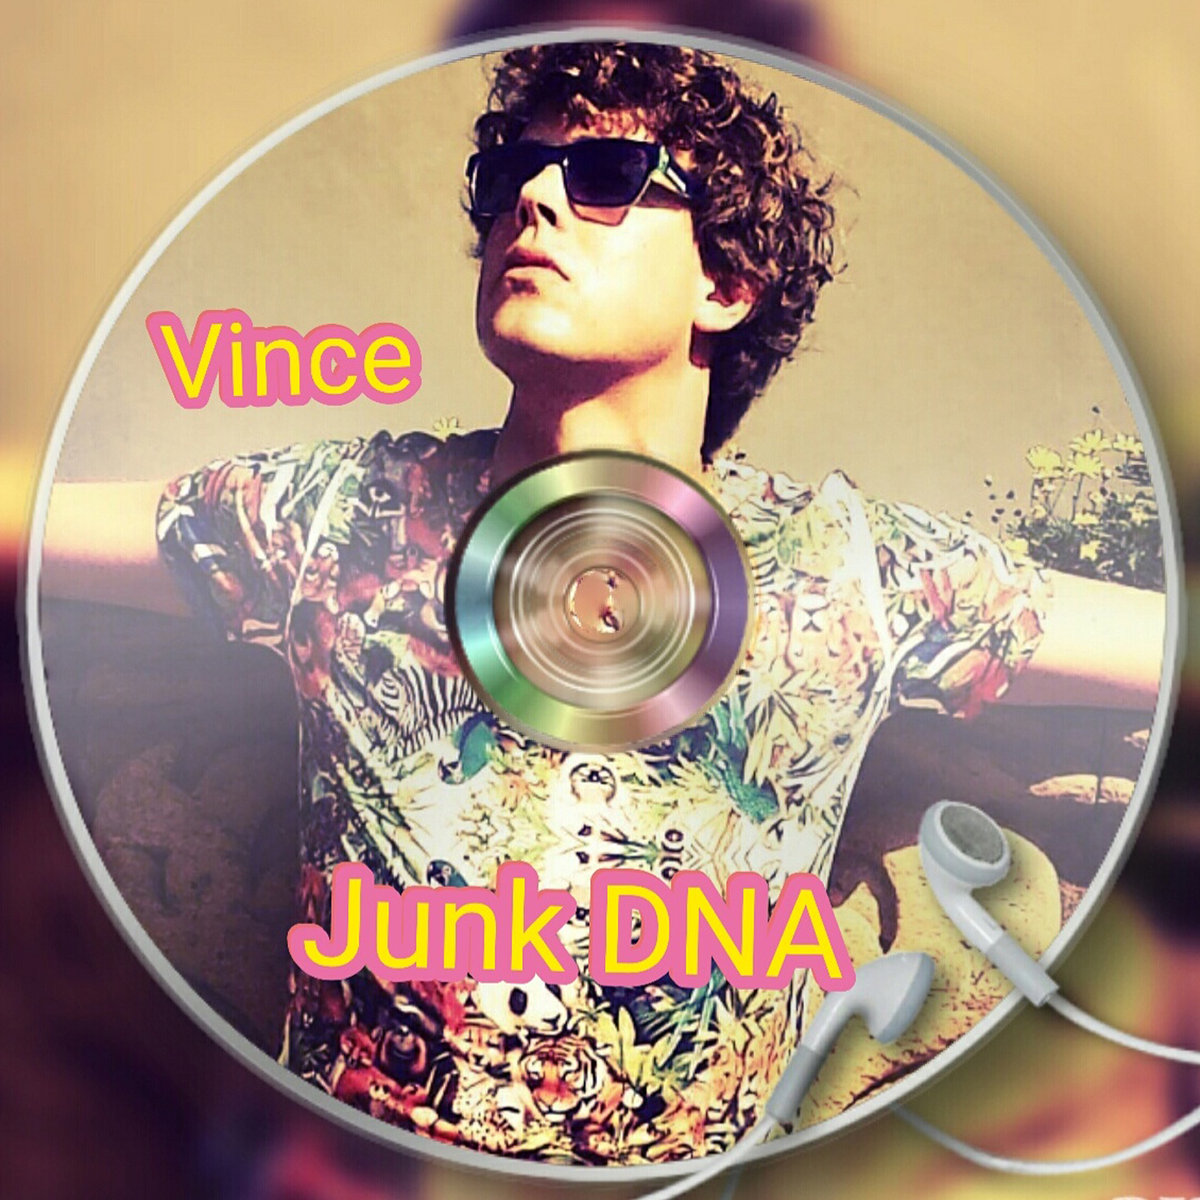 Vince - Vortex @ 'Junk DNA' album (pop, pop punk)